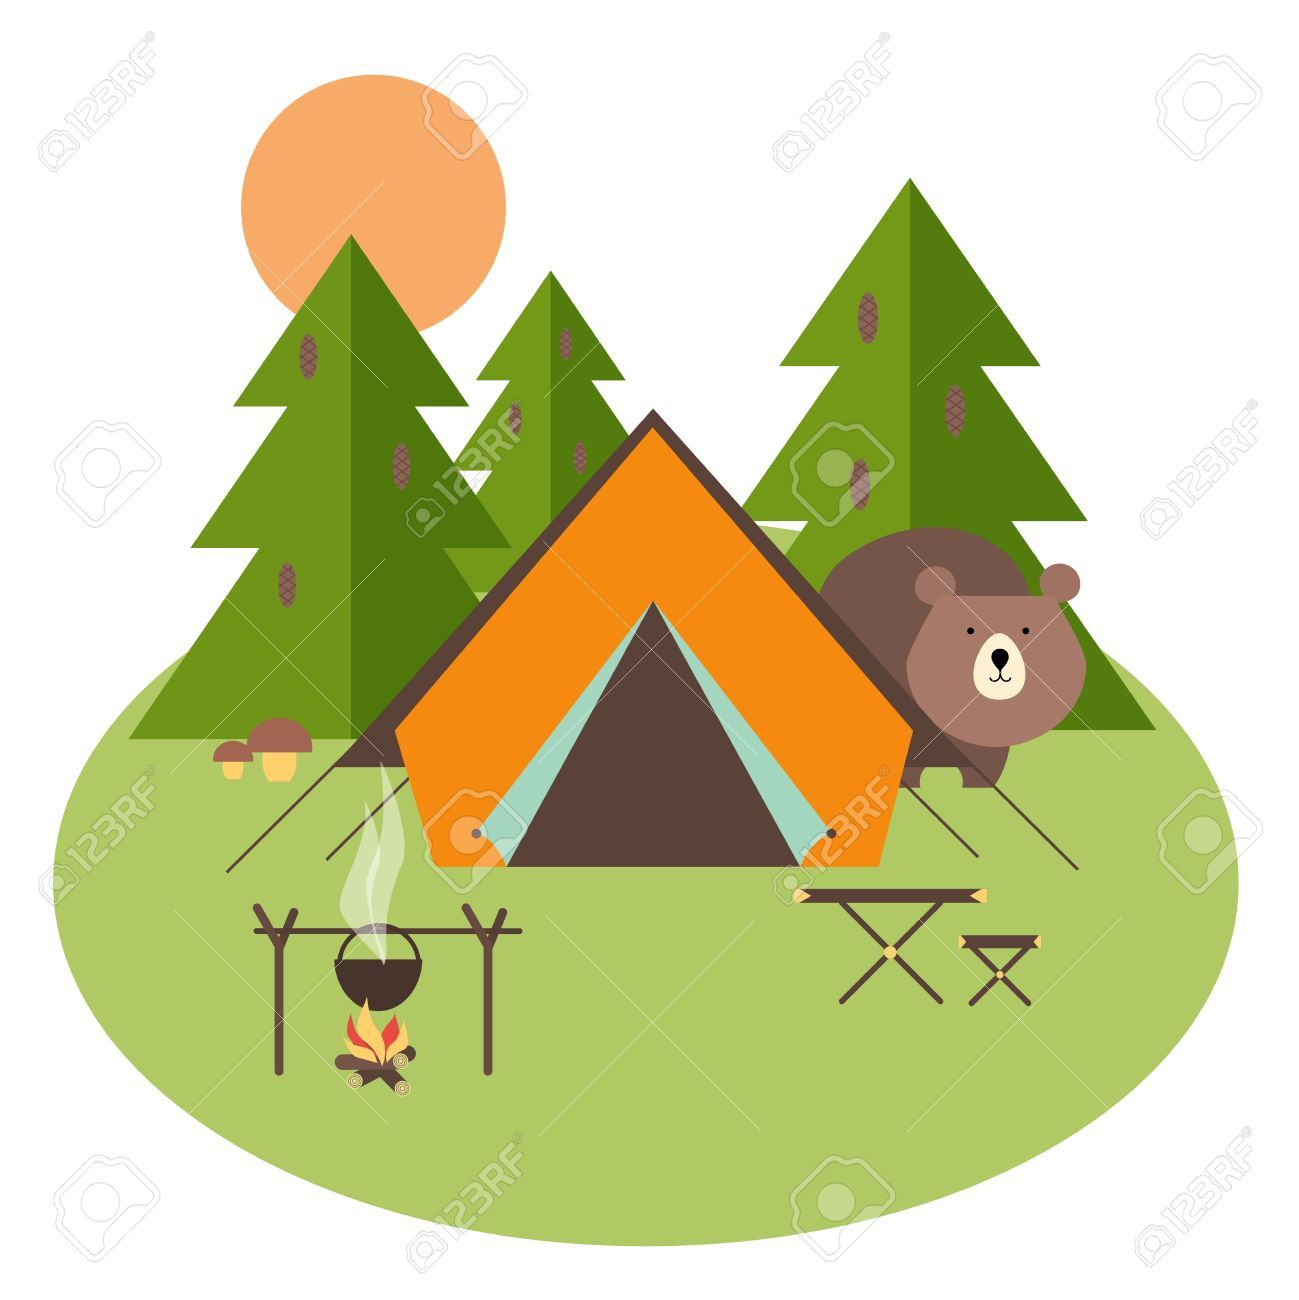 Camping Tent Stock Vector Illustration And Royalty Free.